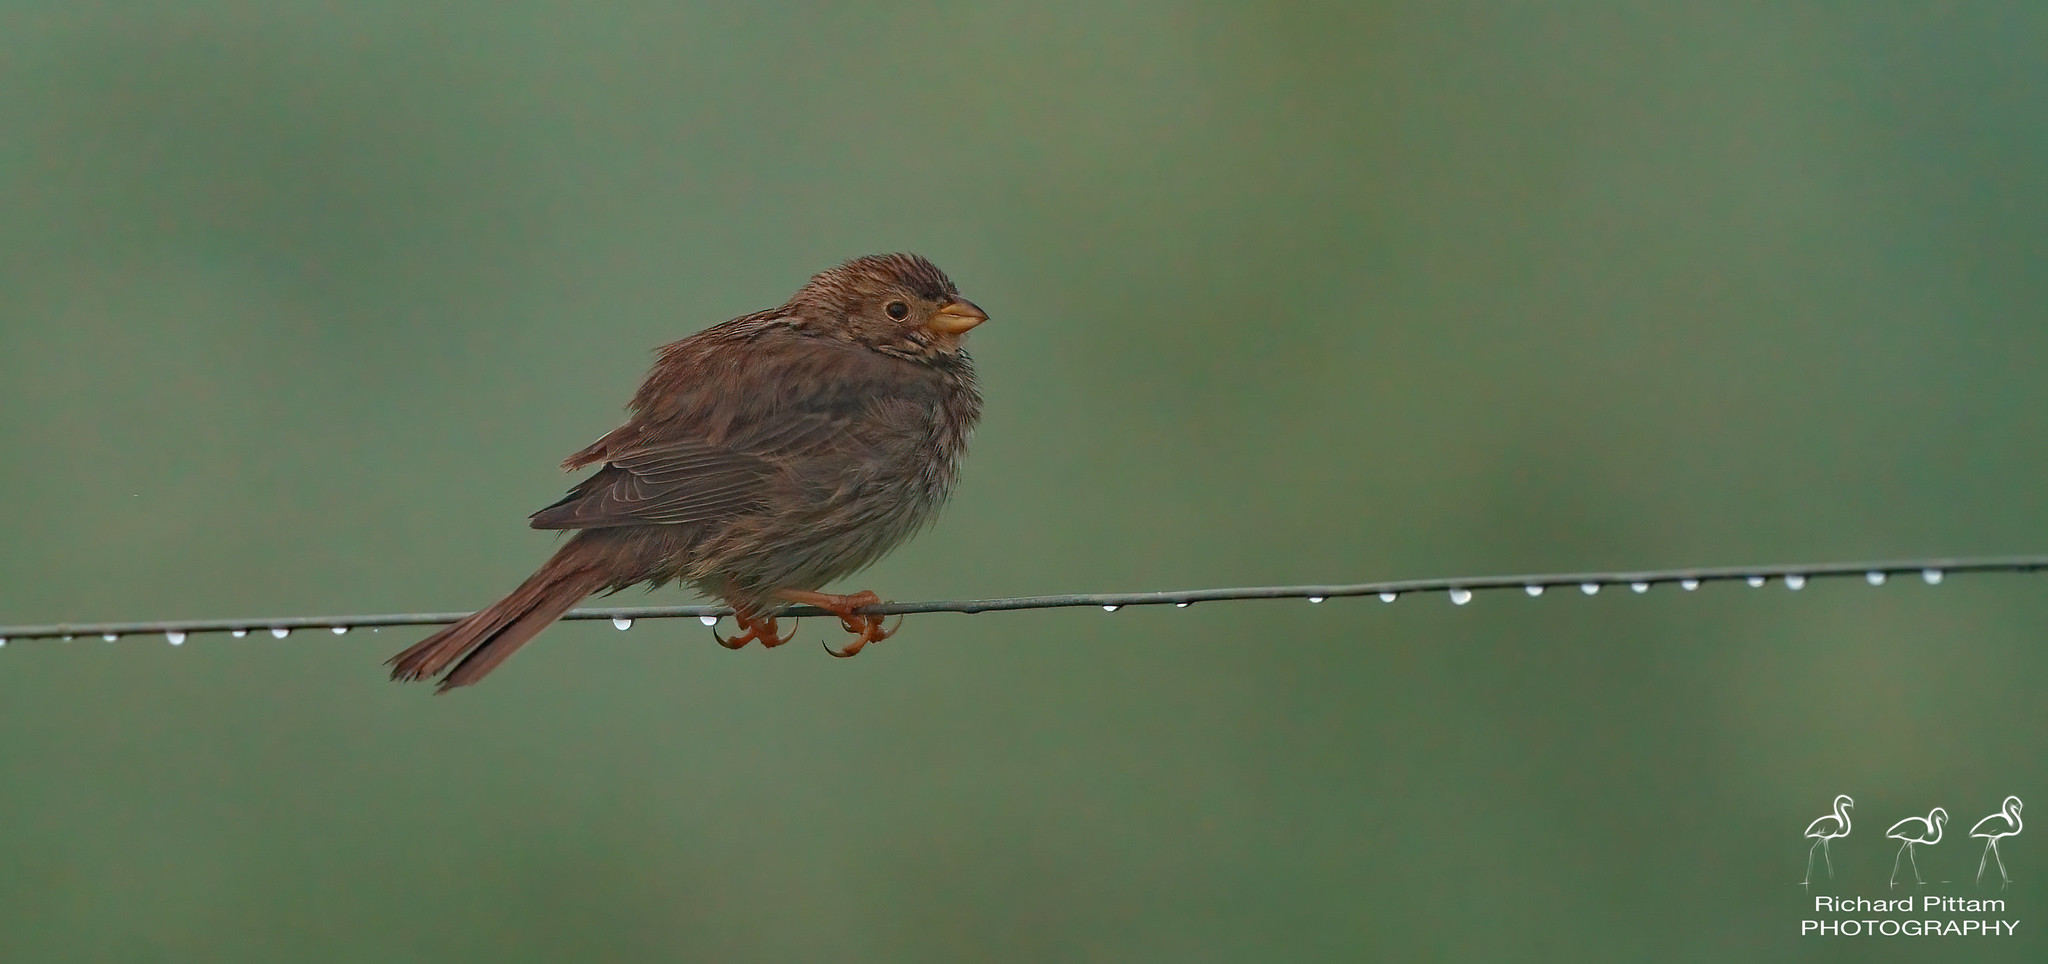 Corn bunting in thick mist